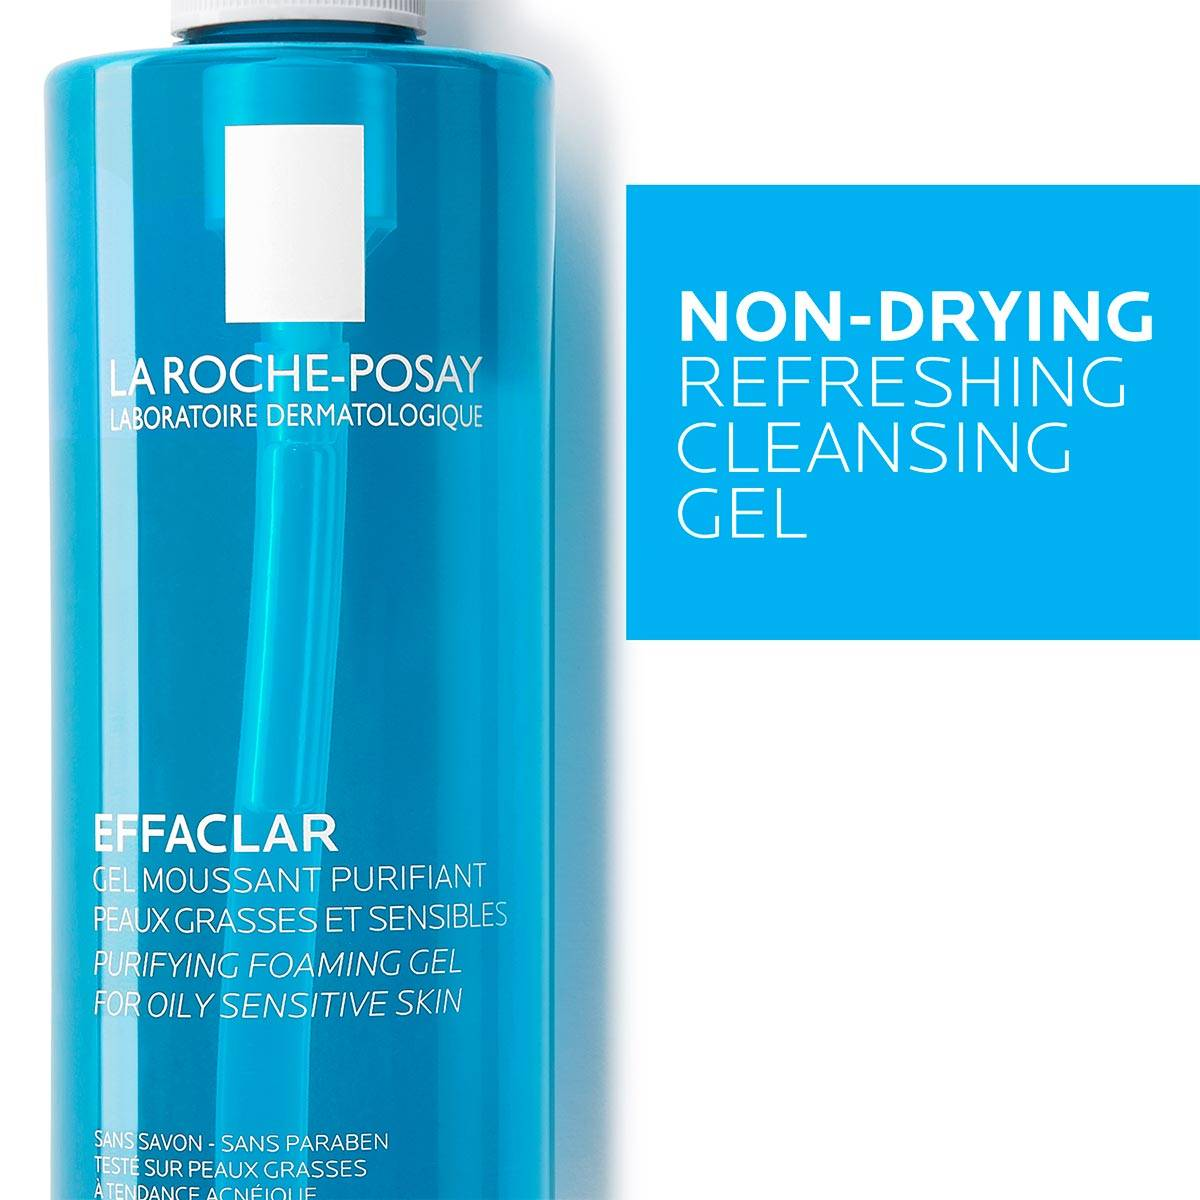 La Roche Posay ProductPage Acne Effaclar Cleansing Foaming Gel 400ml 3